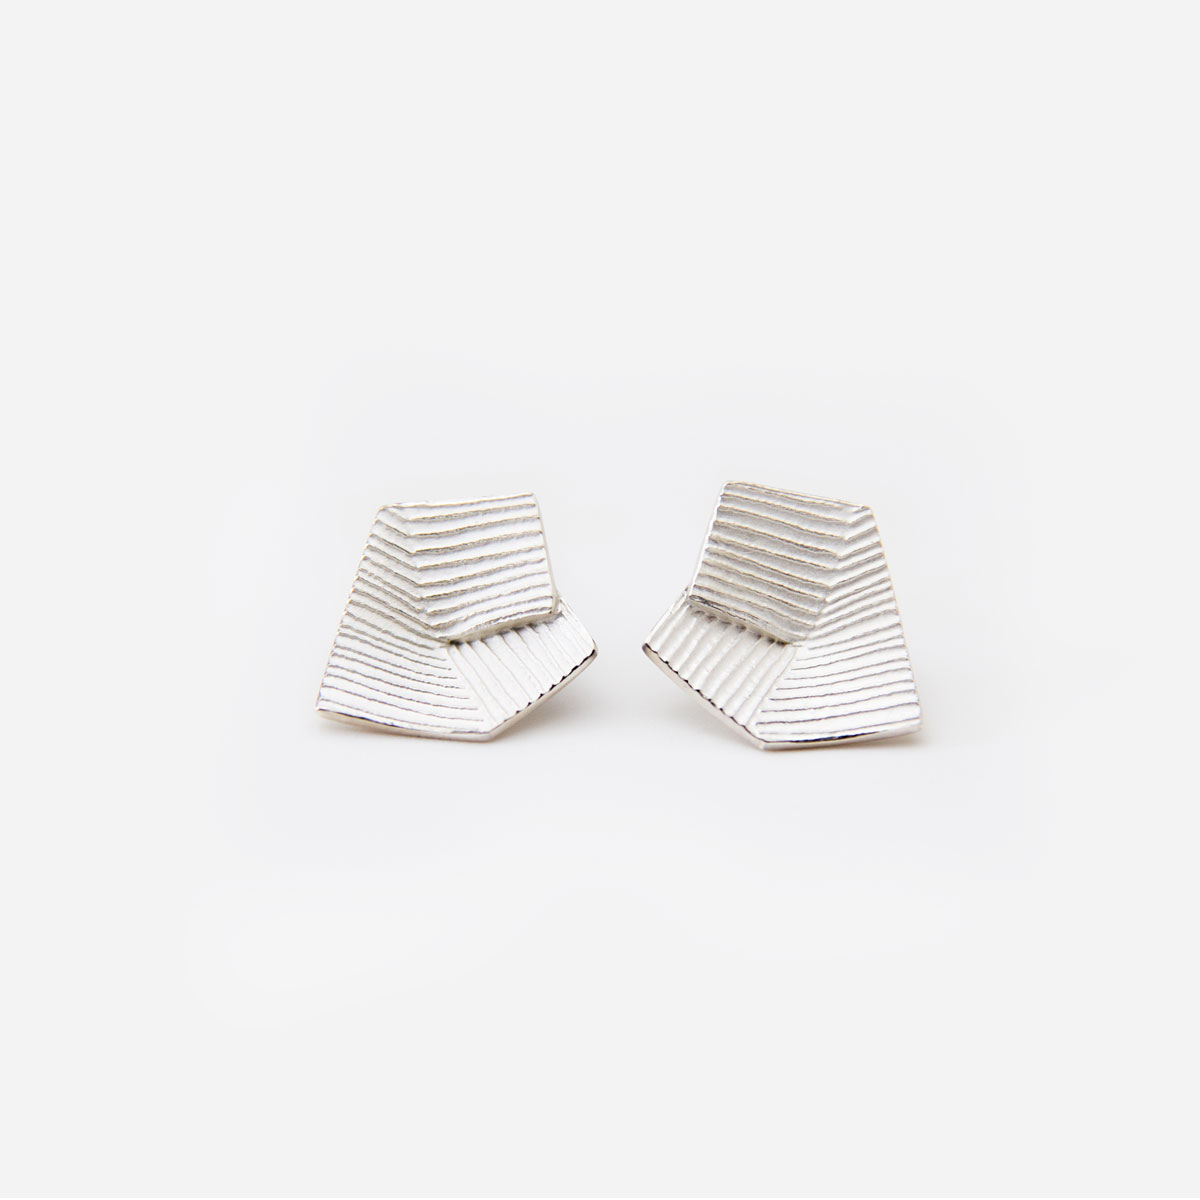 'Lines in Motion' Silver Earrings, Small